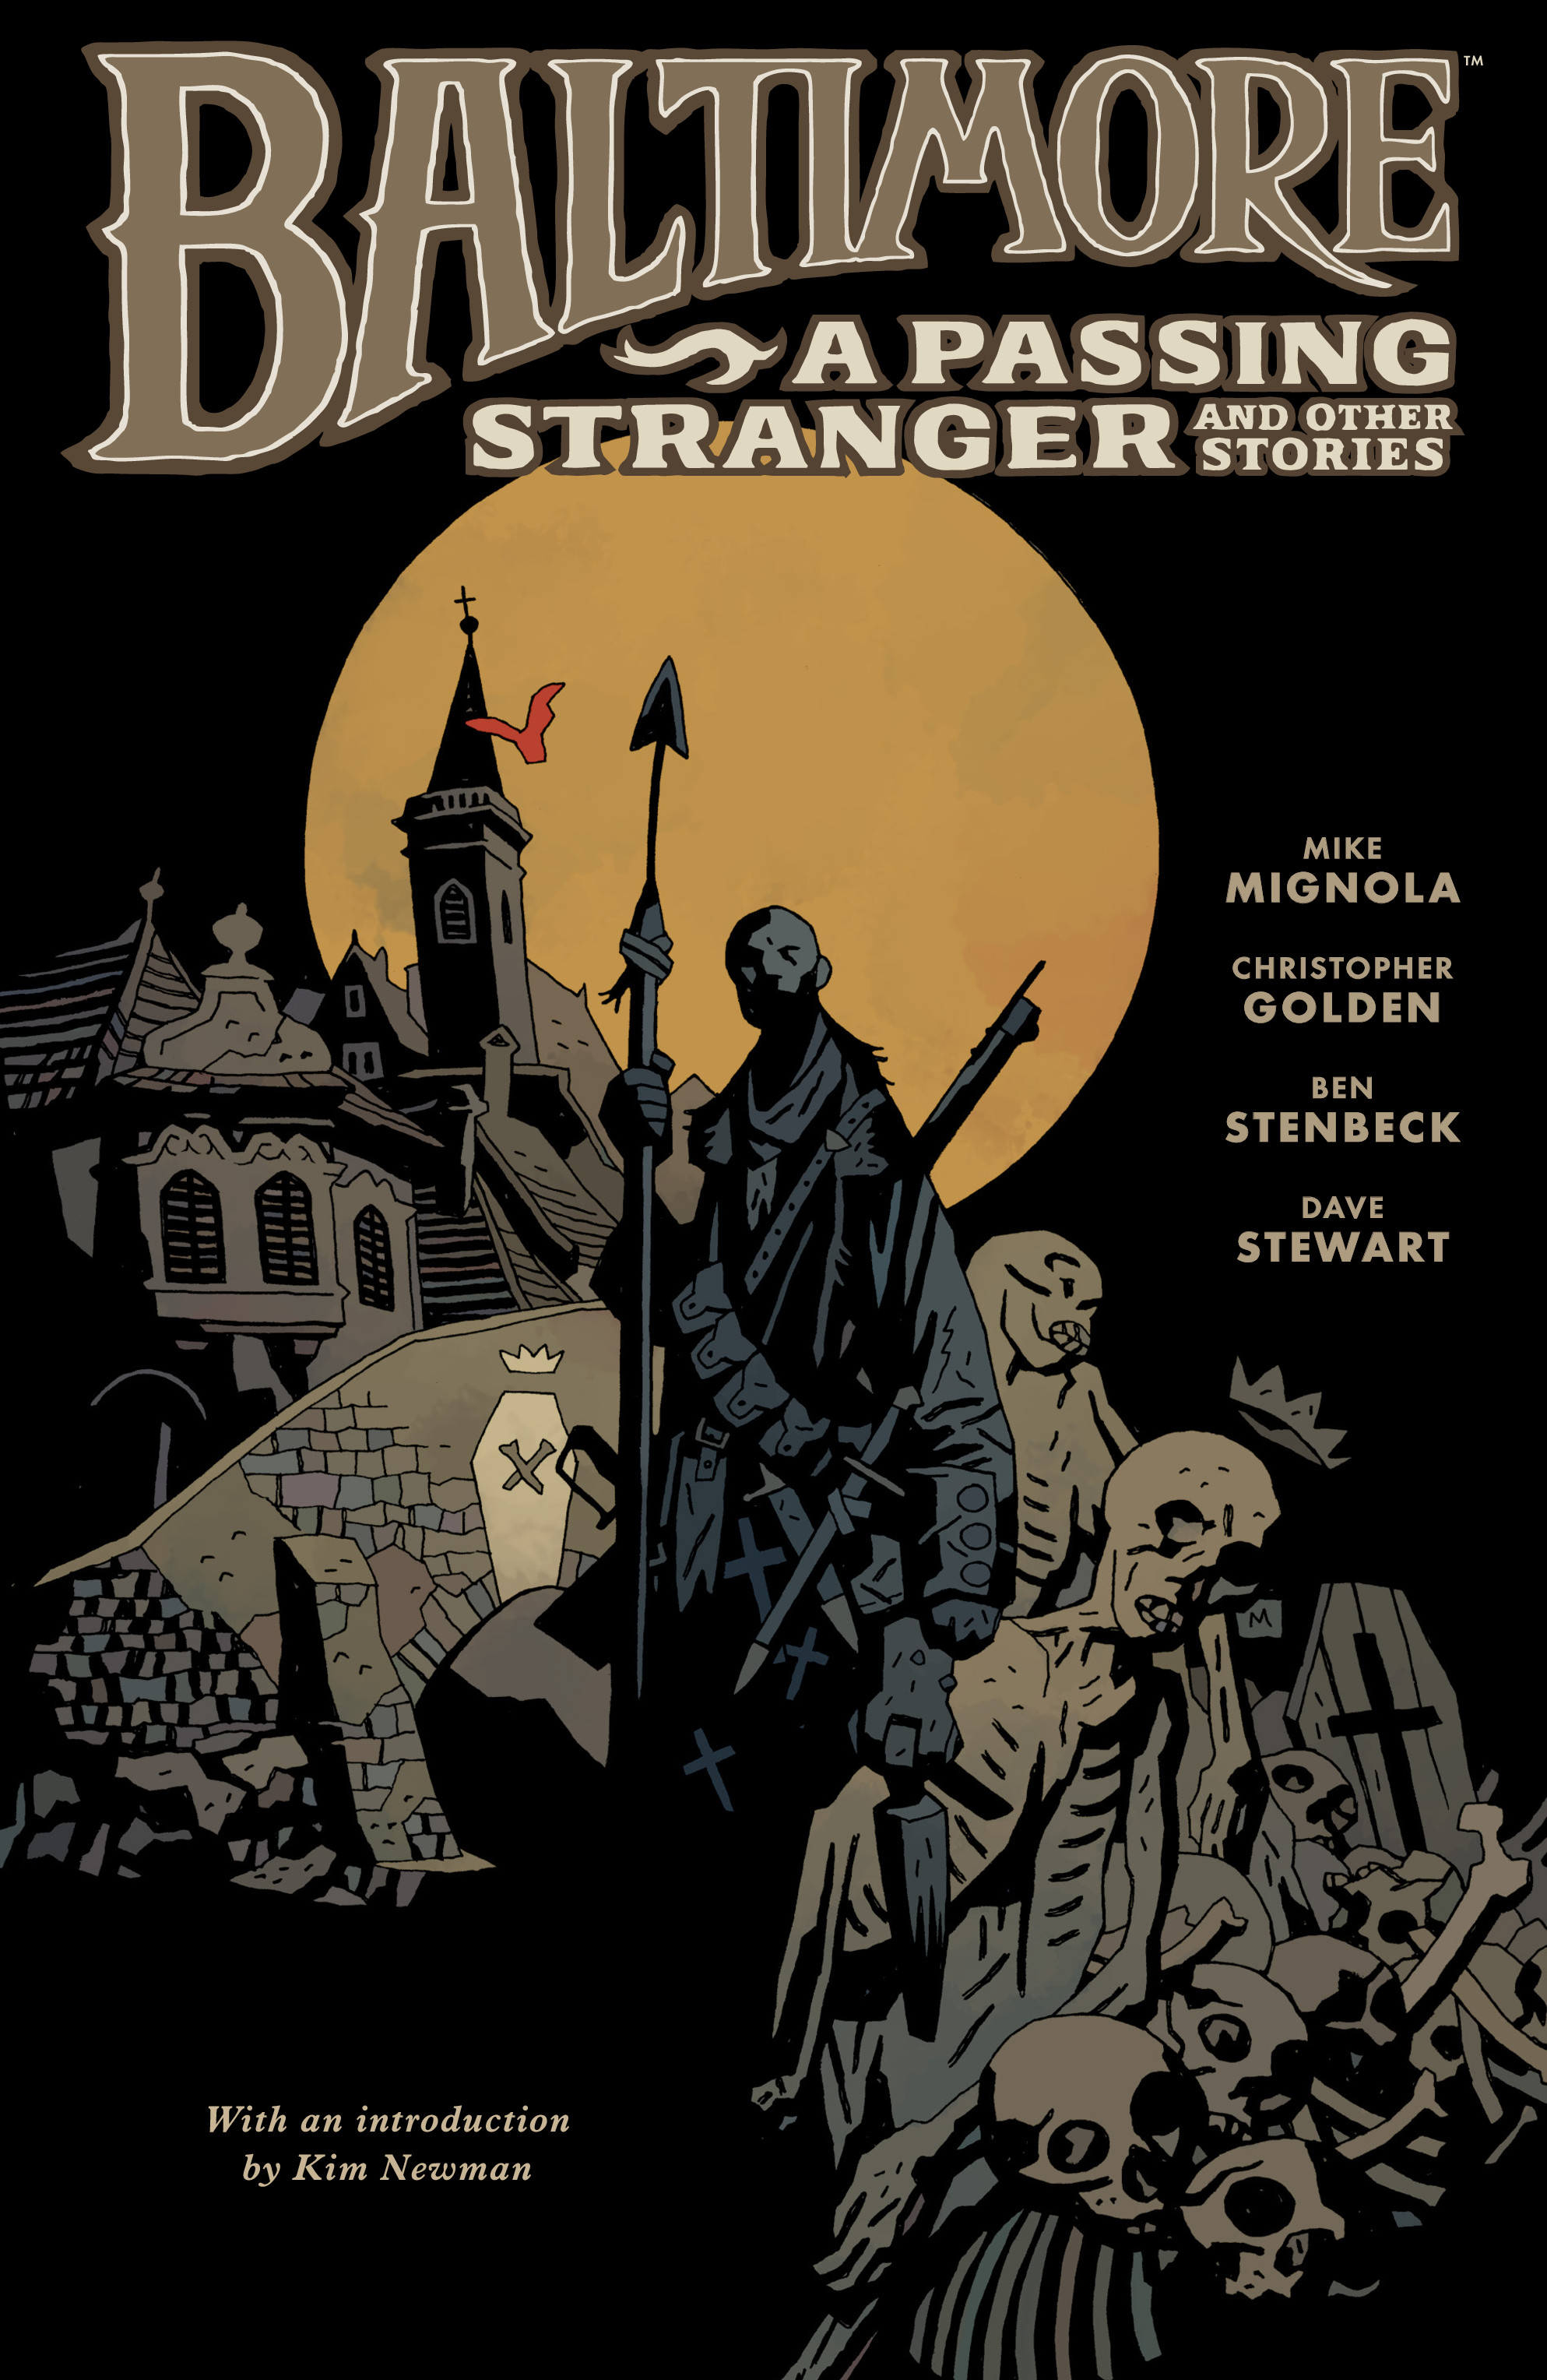 Read online Baltimore Volume 3: A Passing Stranger and Other Stories comic -  Issue # Full - 1